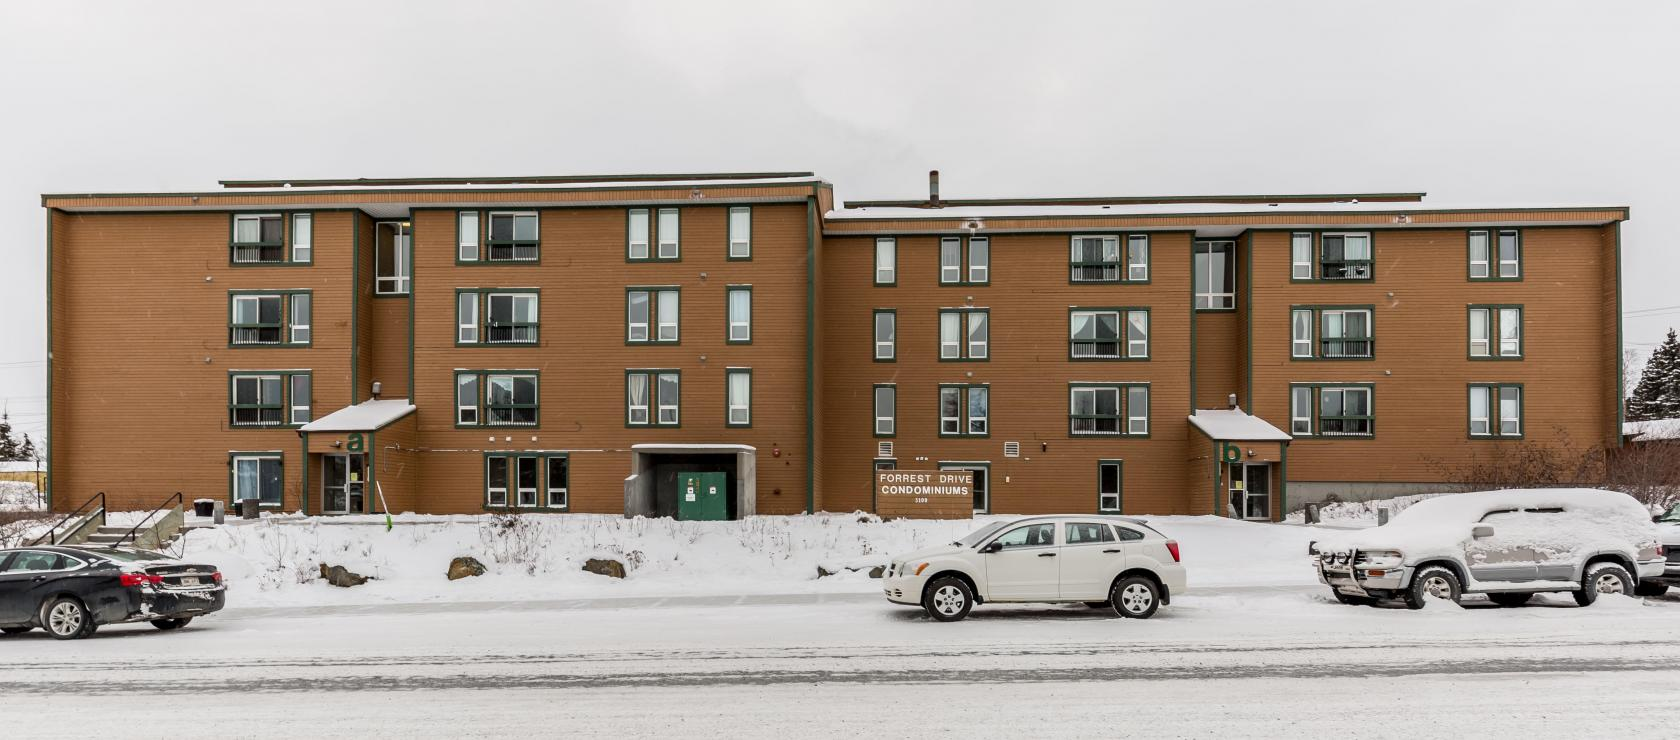 301A - 5109 Forrest Drive, Forrest Park, Yellowknife 2